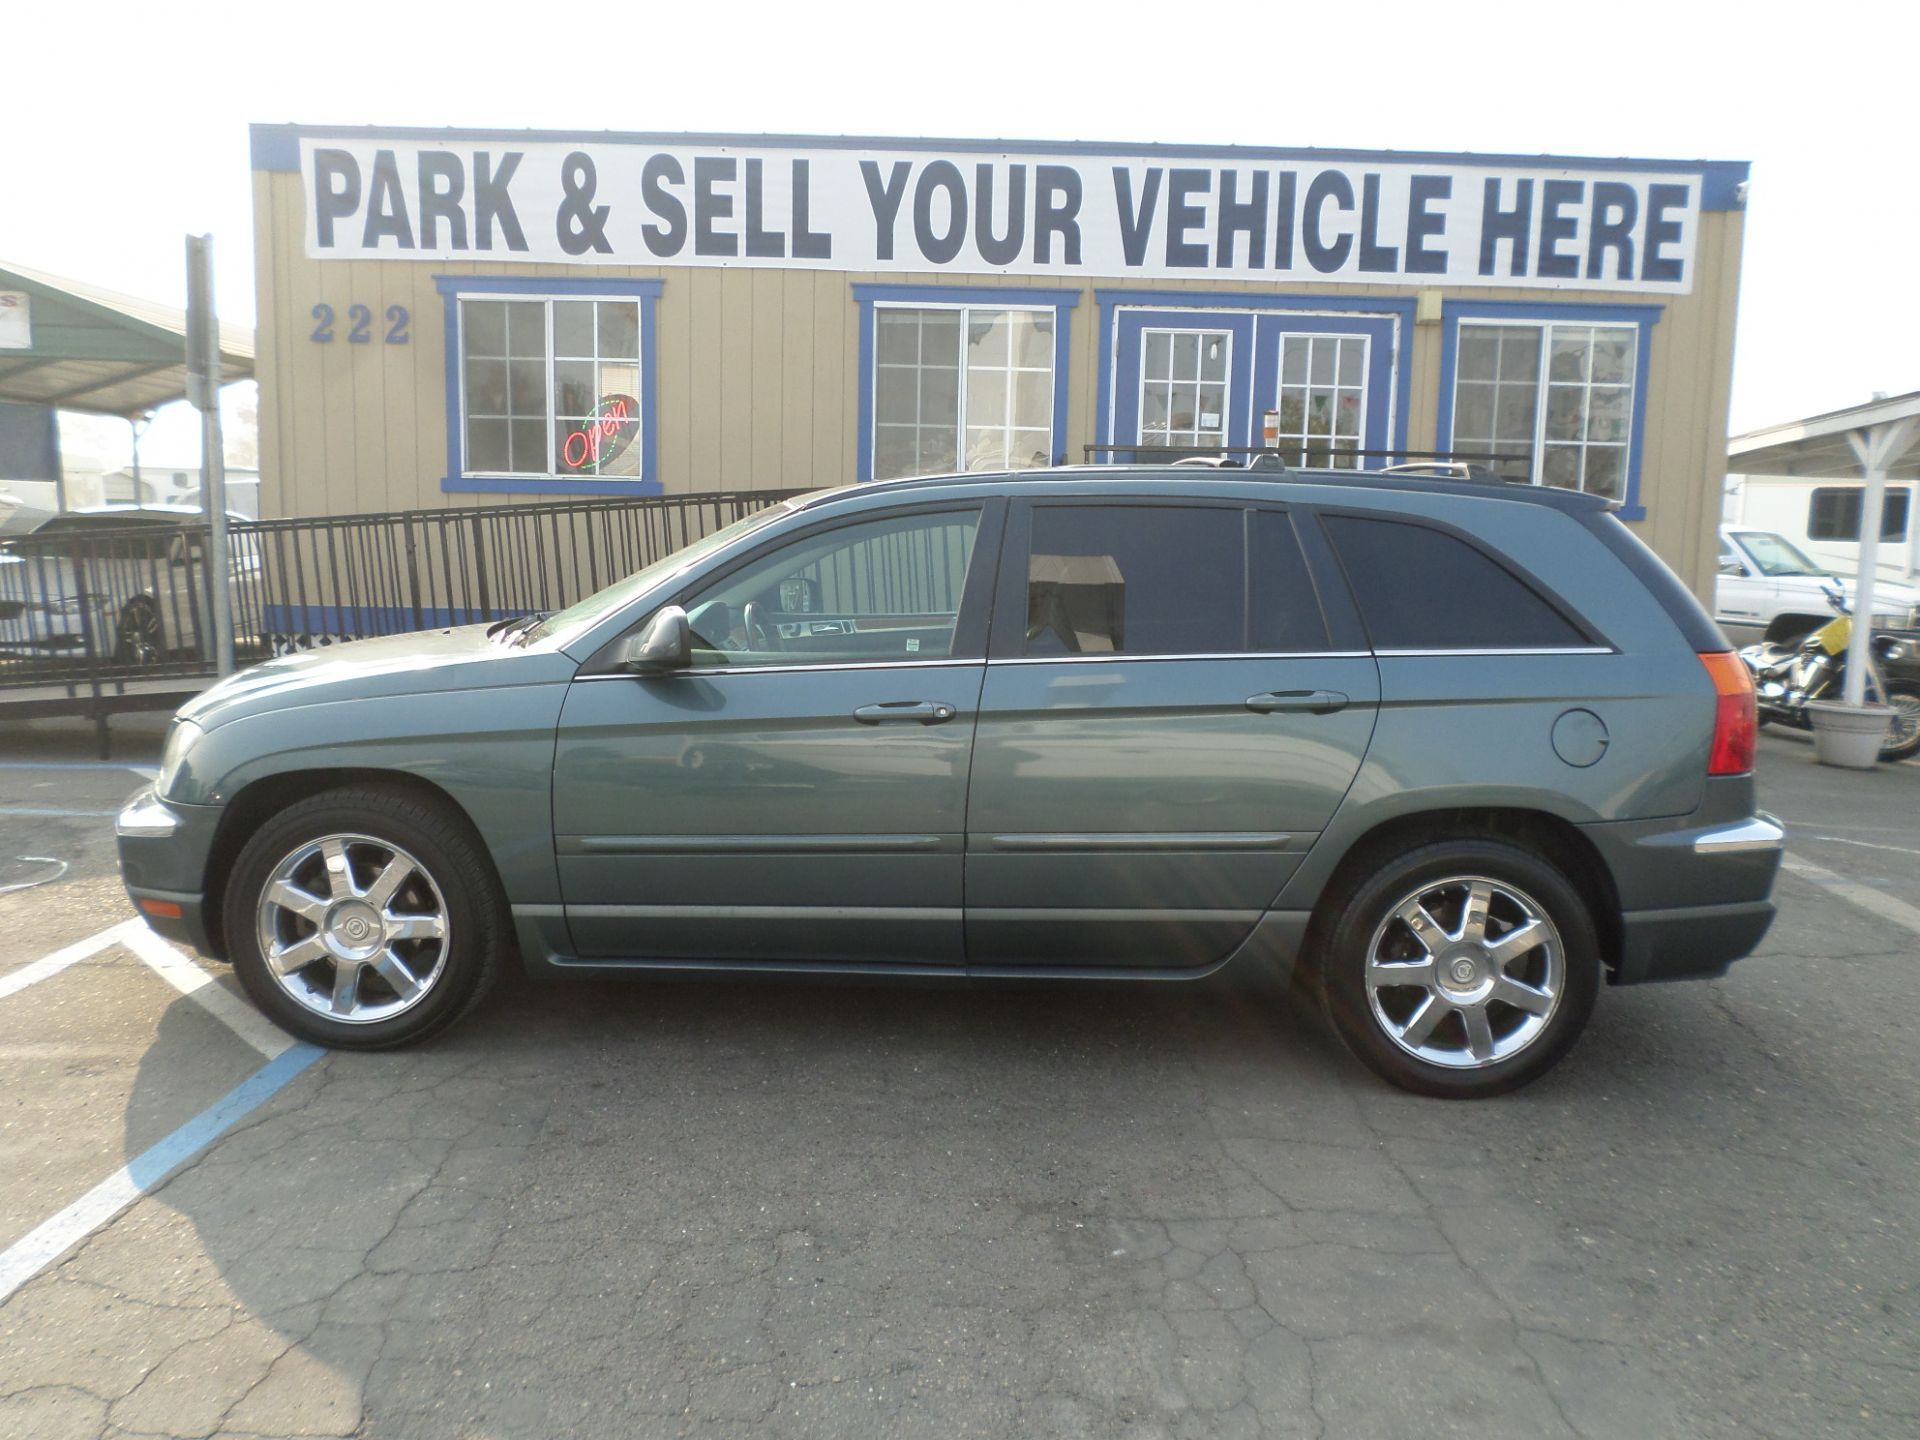 2006 Chrysler Pacifica Chrysler Pacifica Suv For Sale Leather